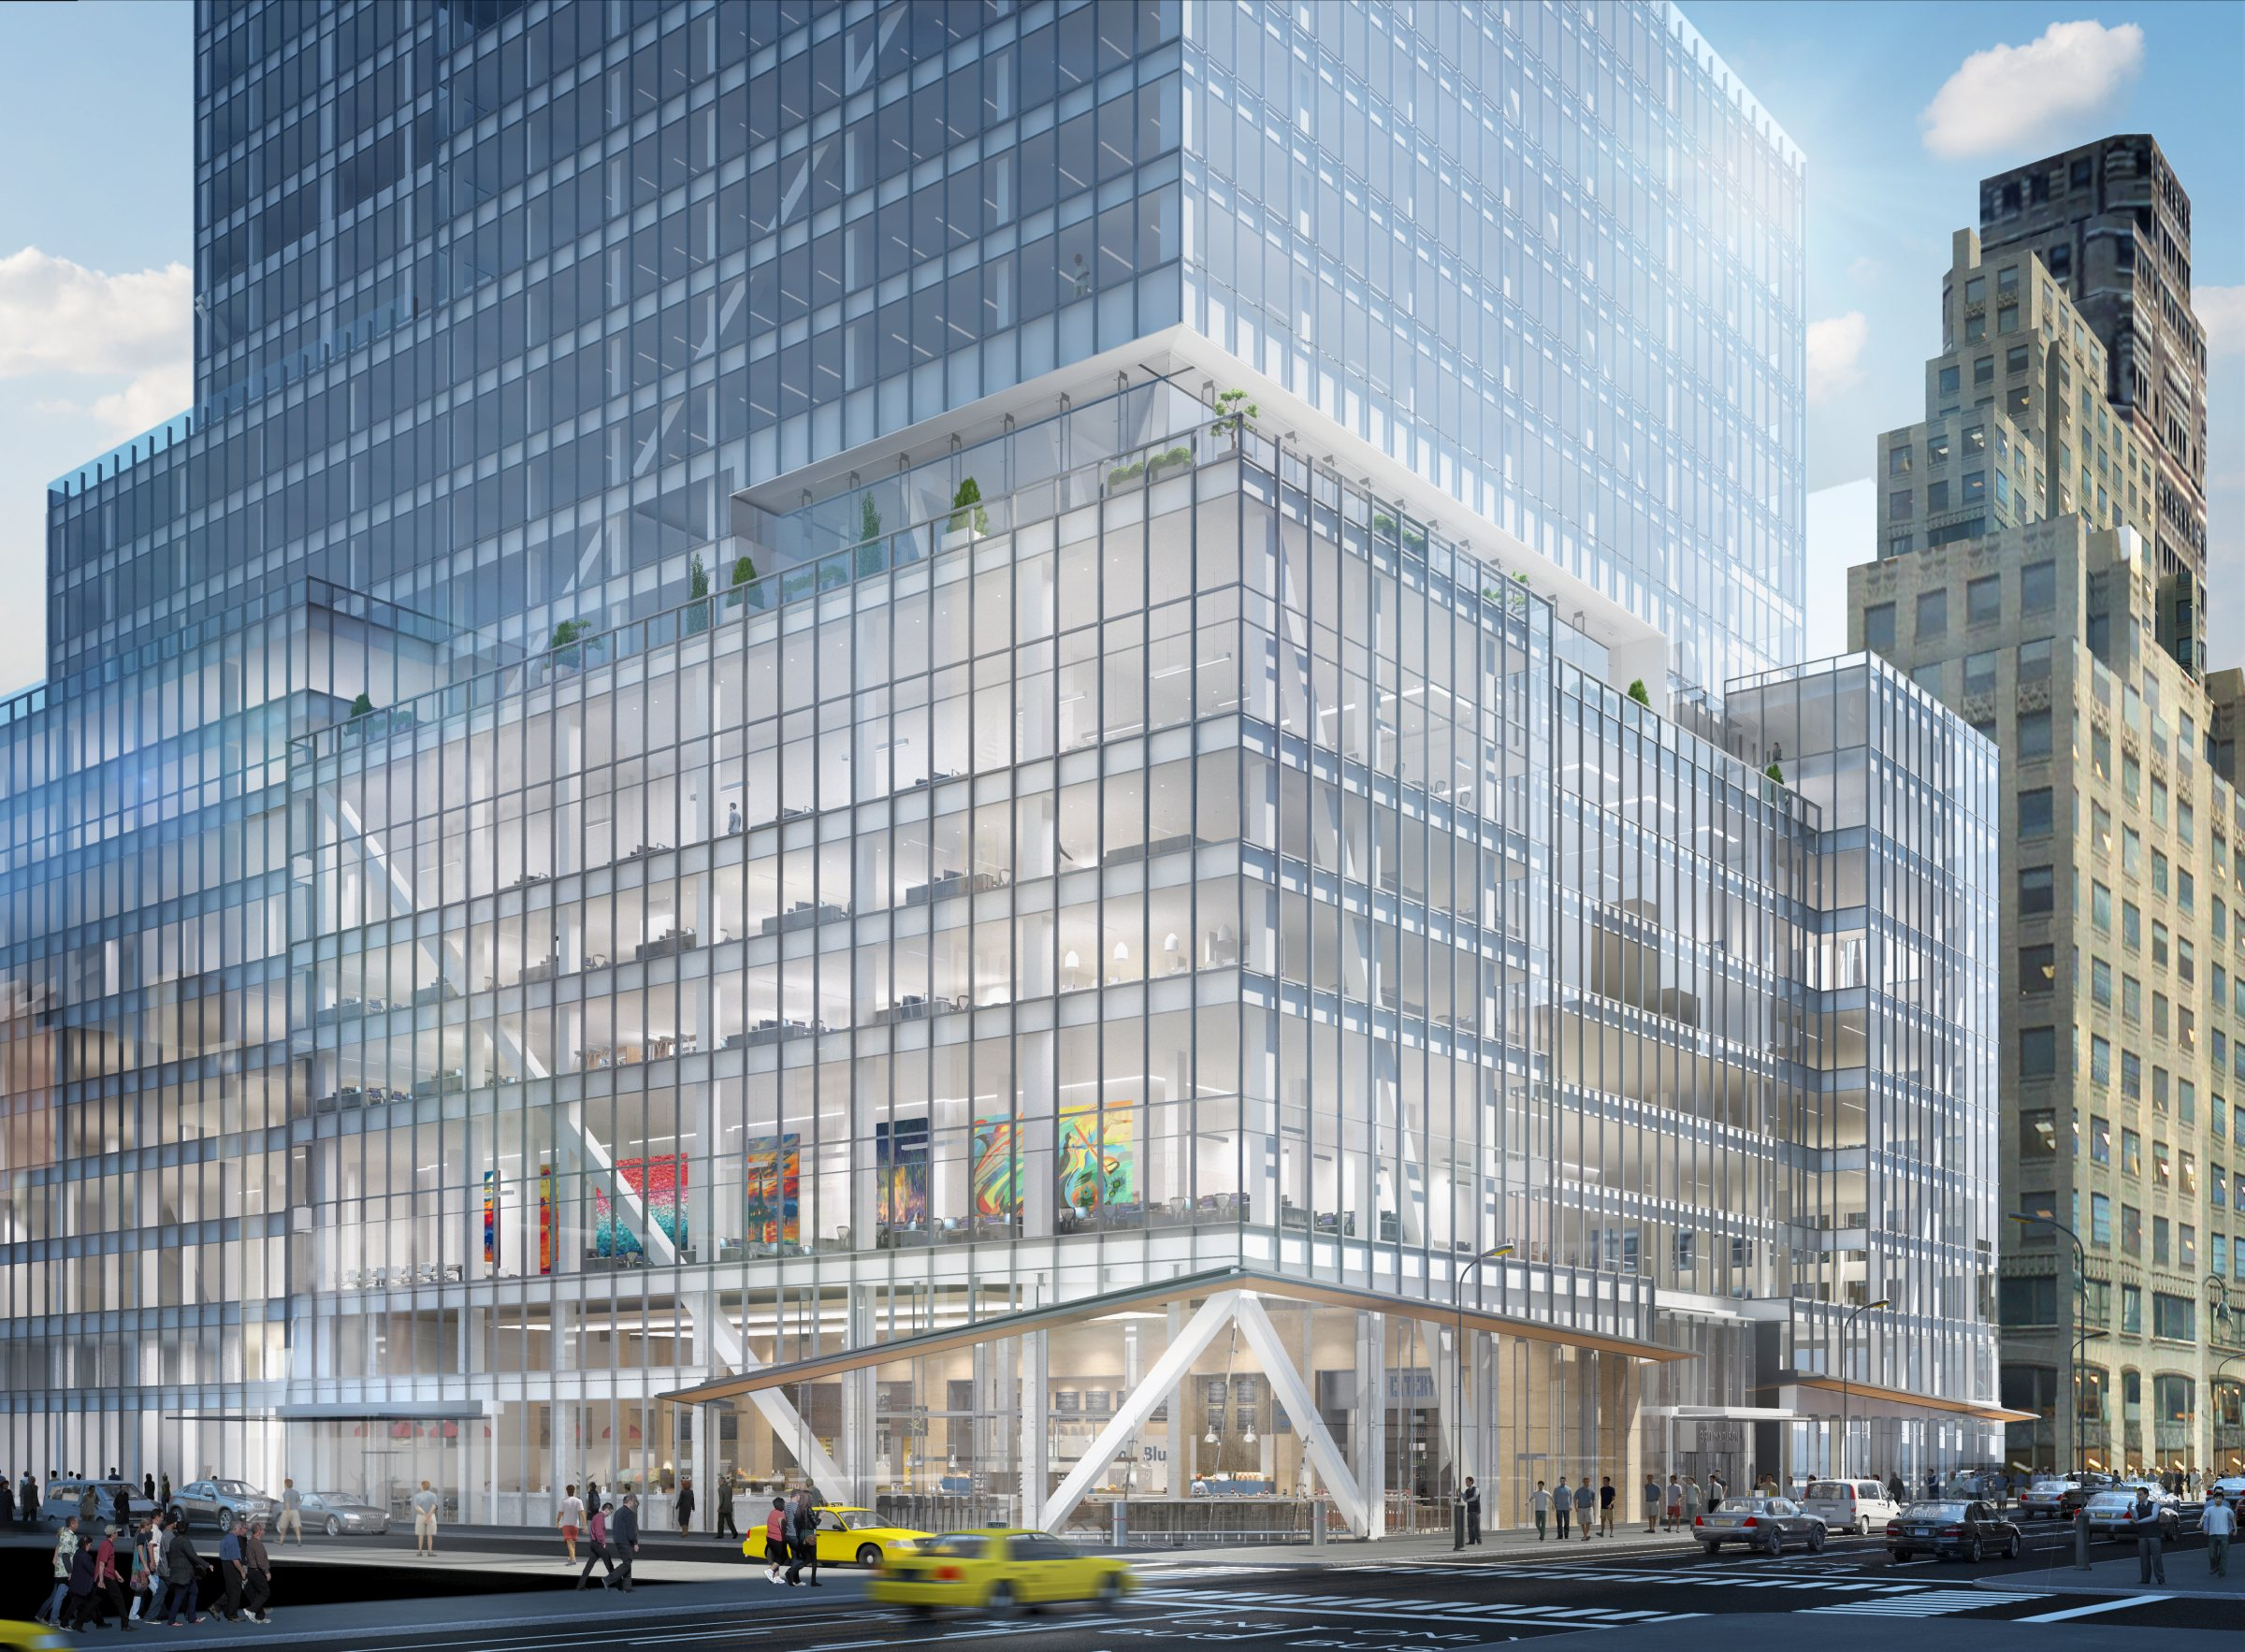 JPMorgan leases 16 floors at 360 Madison | Real Estate Weekly